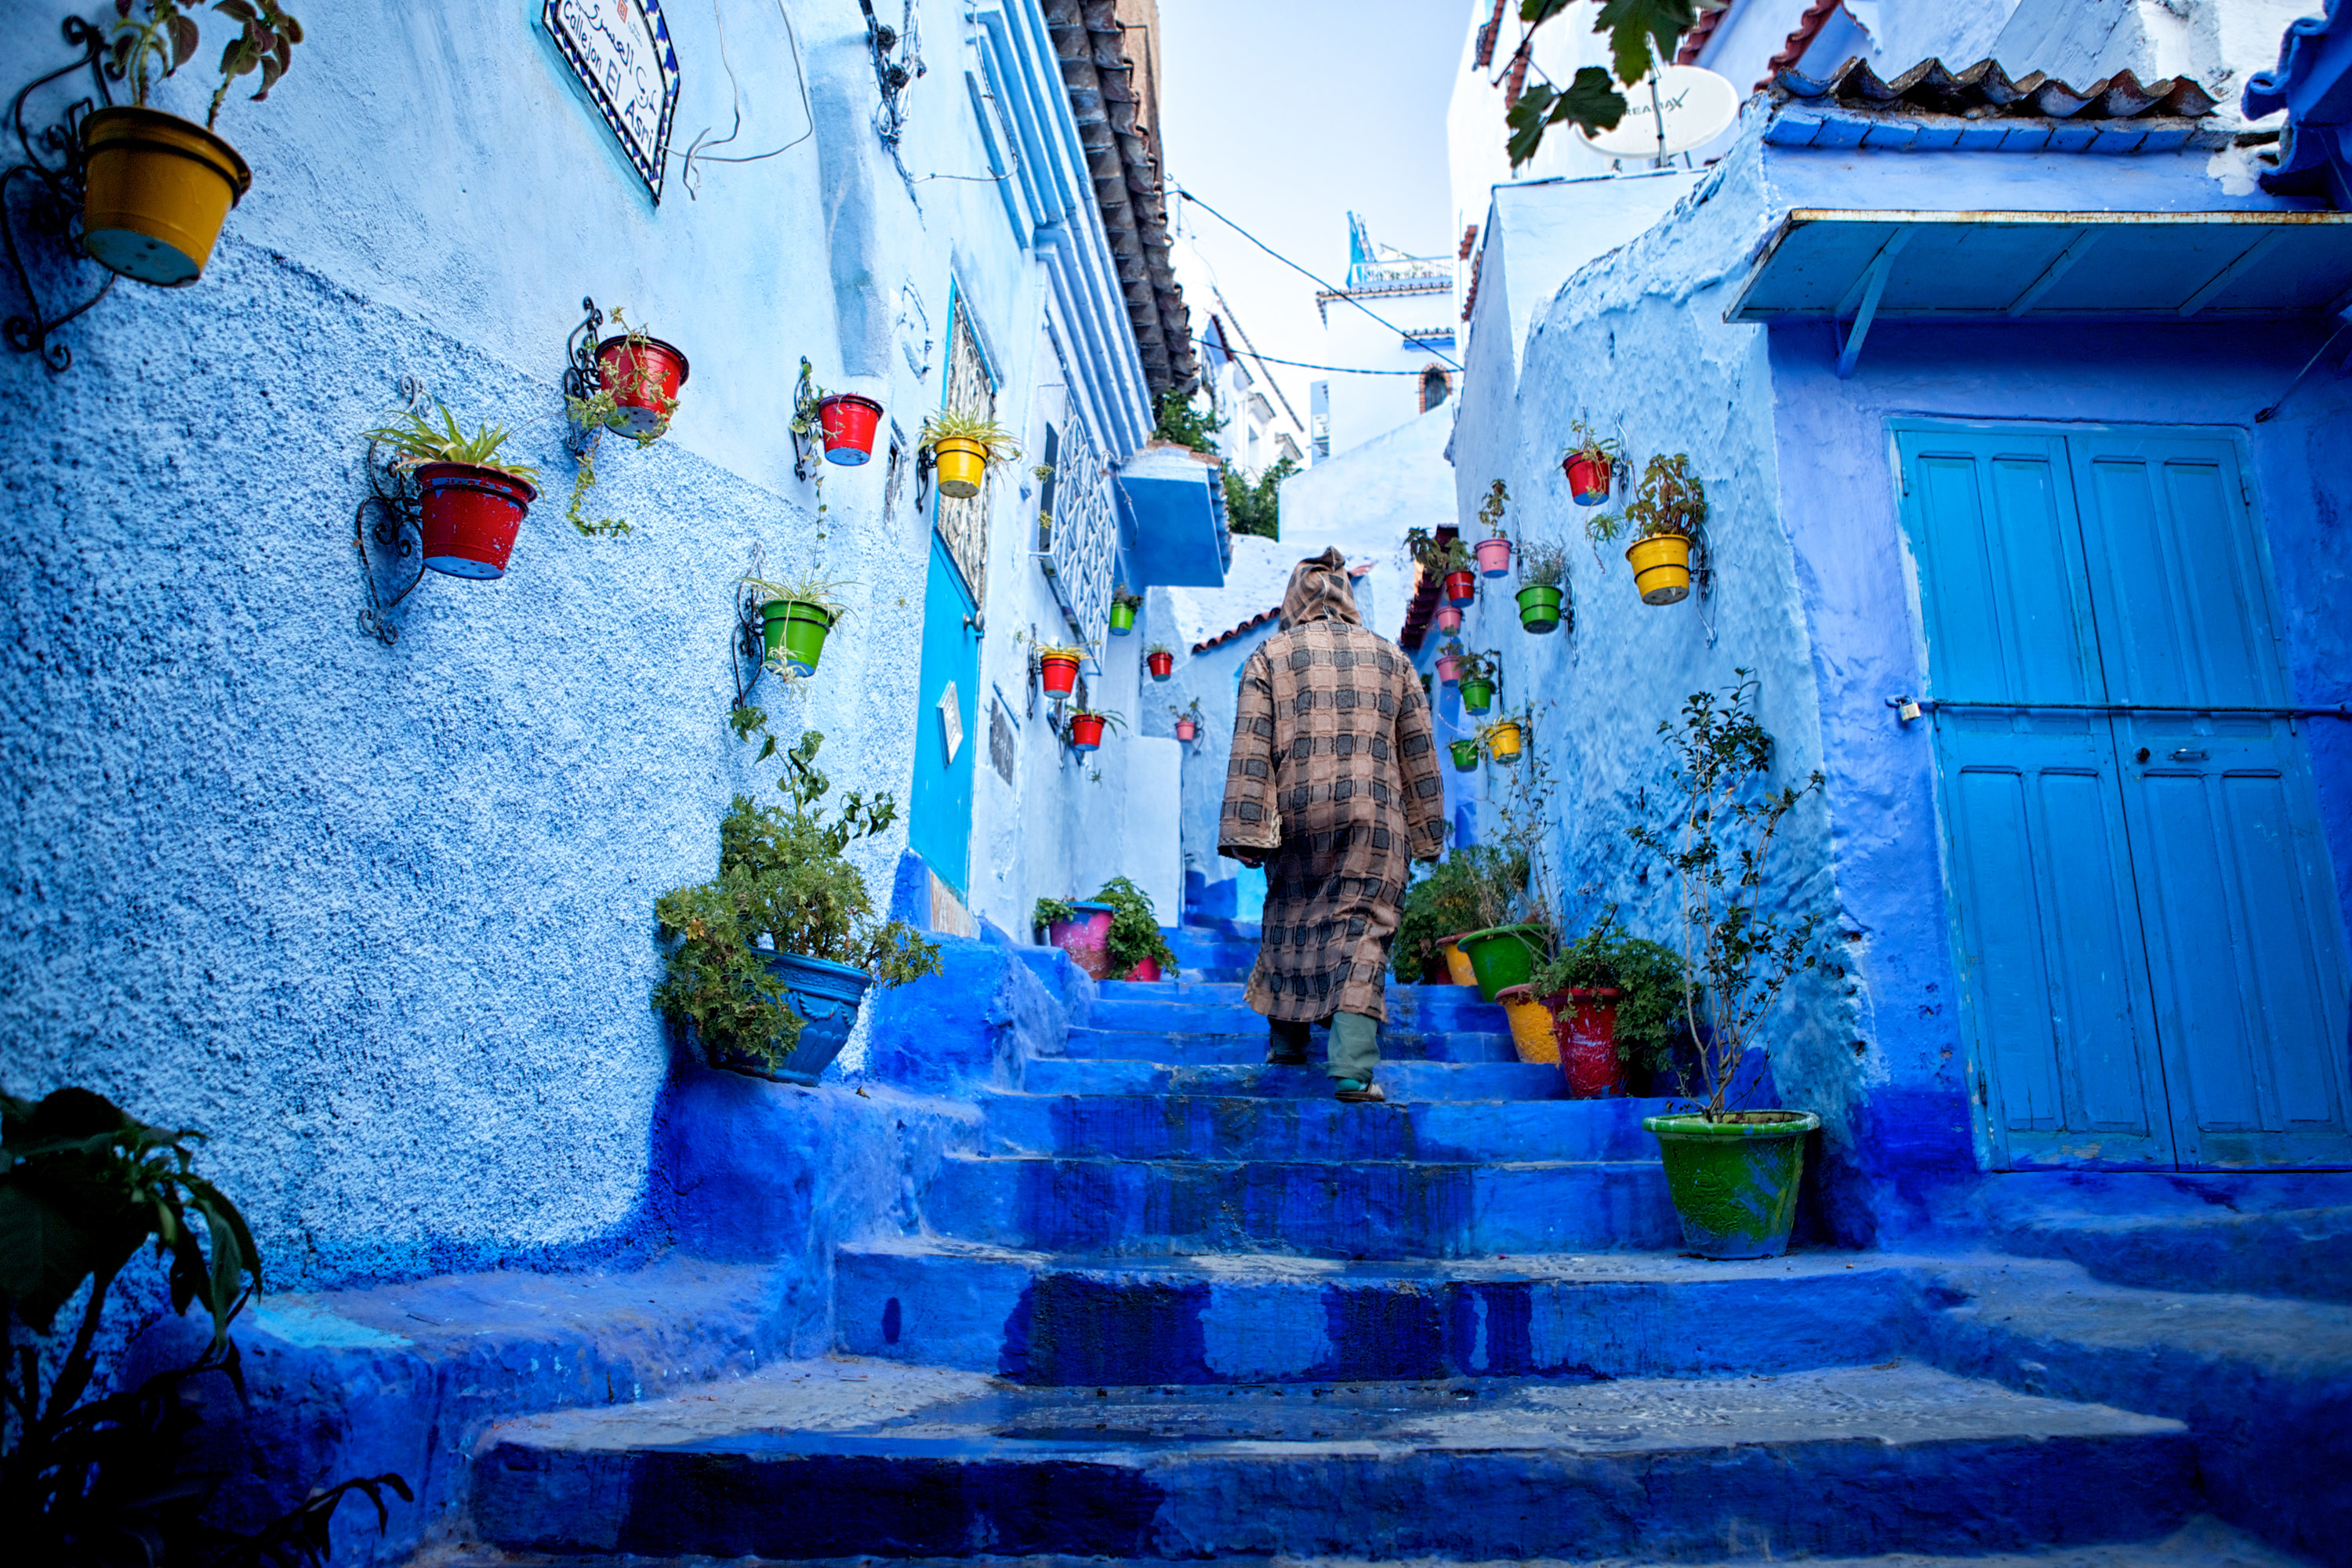 Man walks up the blue steps of a narrow street in the blue-washed Chefchaouen, Morocco. This town is known for being painted in exclusively one color (blue).